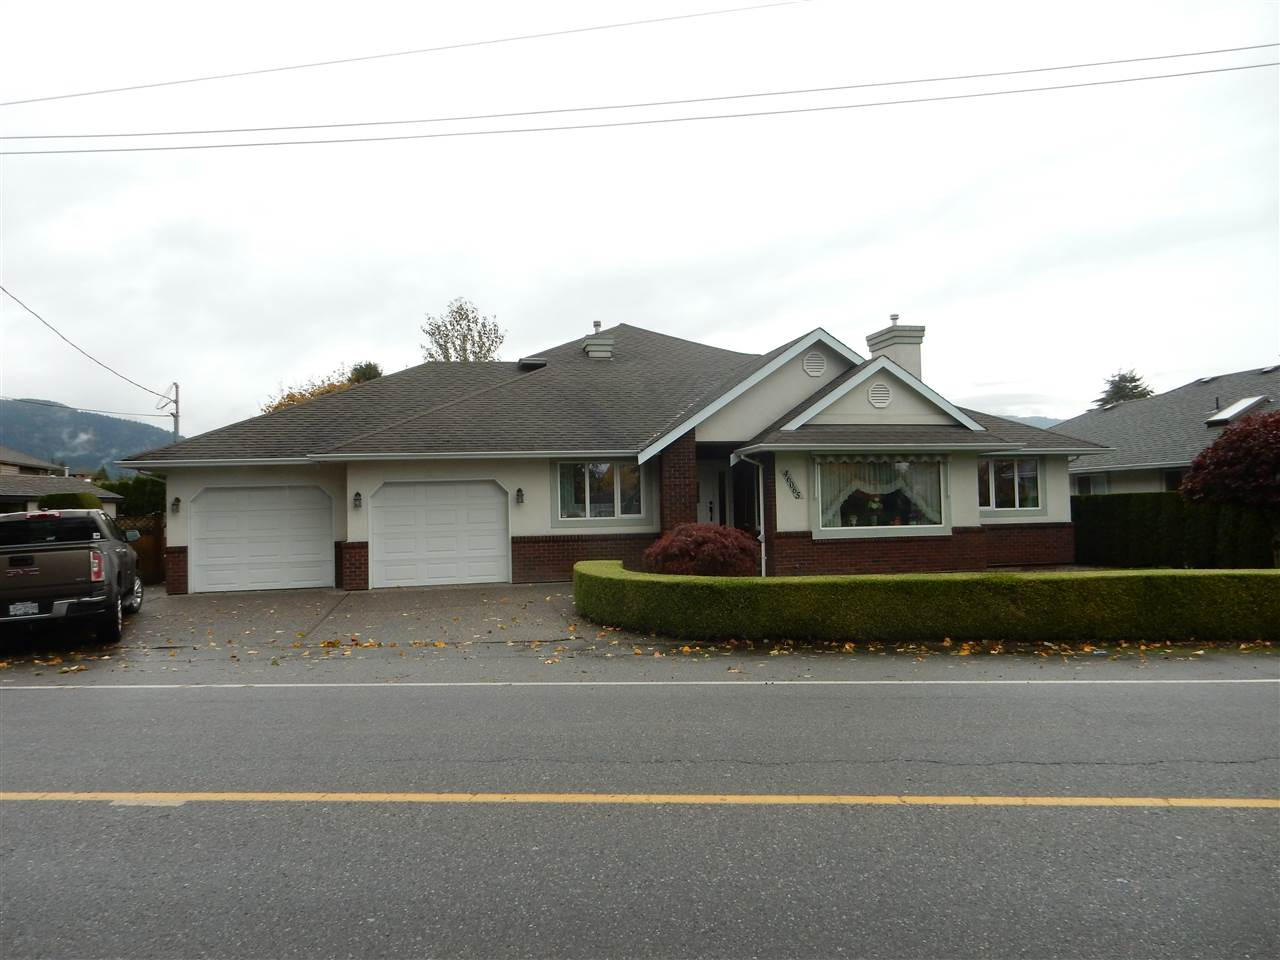 Main Photo: 46065 HOPE RIVER Road in Chilliwack: Fairfield Island House for sale : MLS® # R2136120